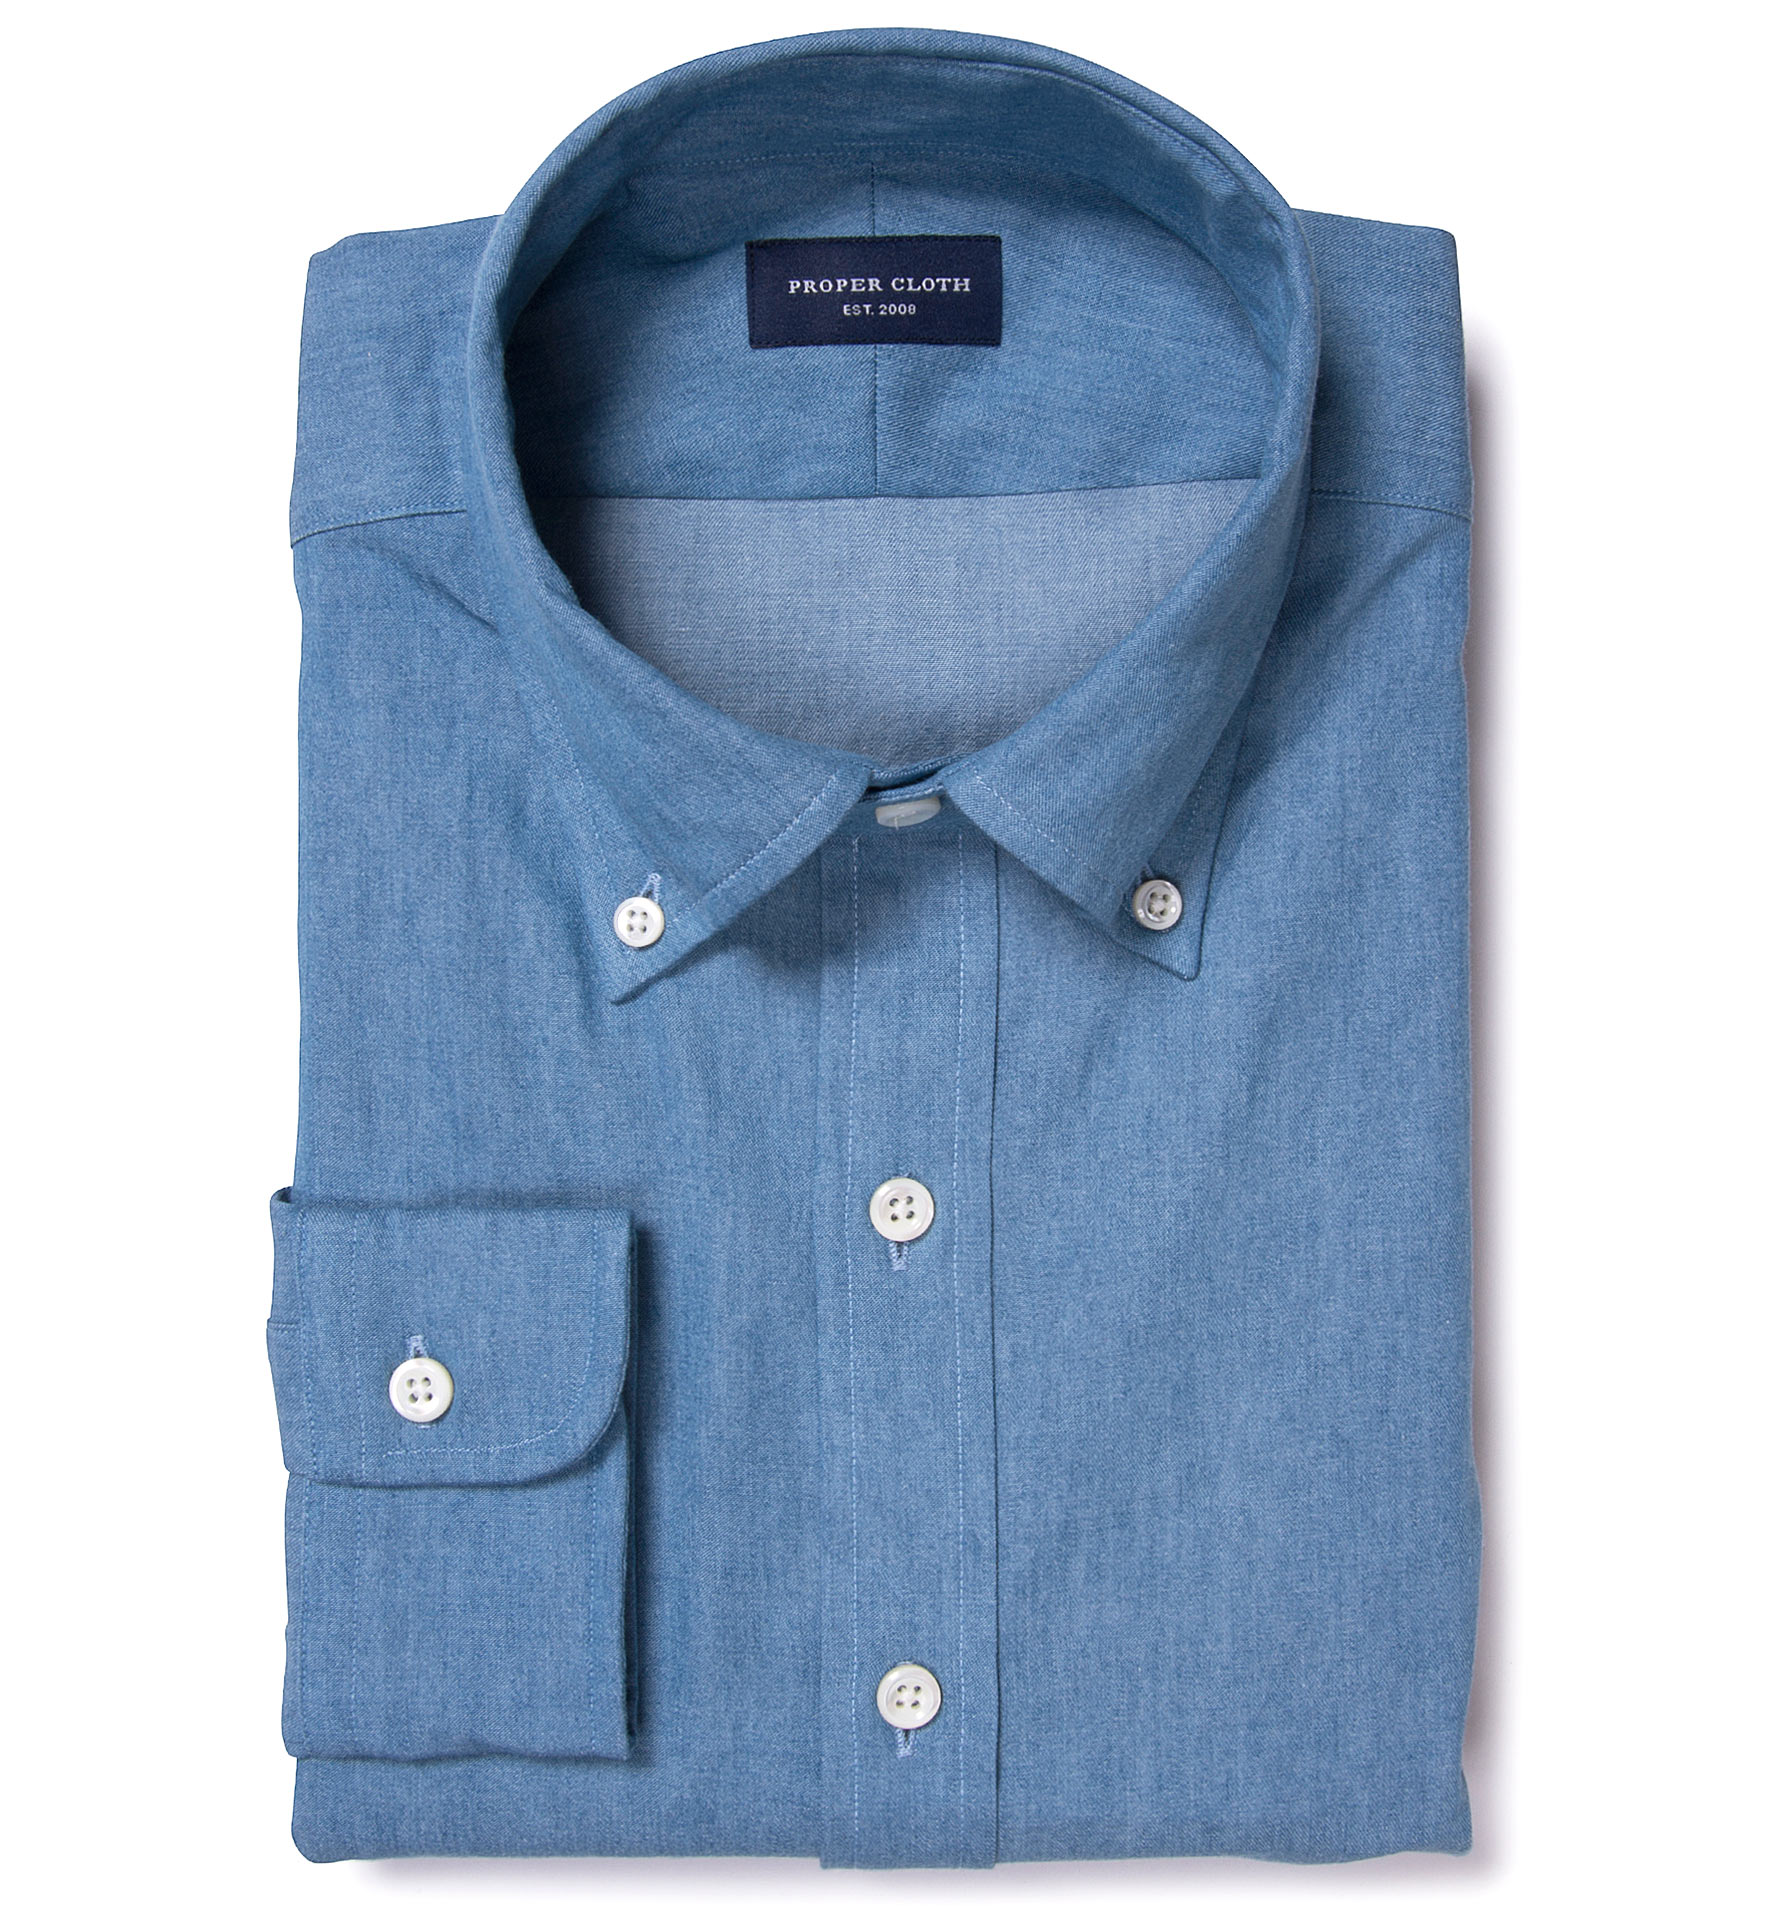 Japanese Light Wash Denim Tailor Made Shirt By Proper Cloth